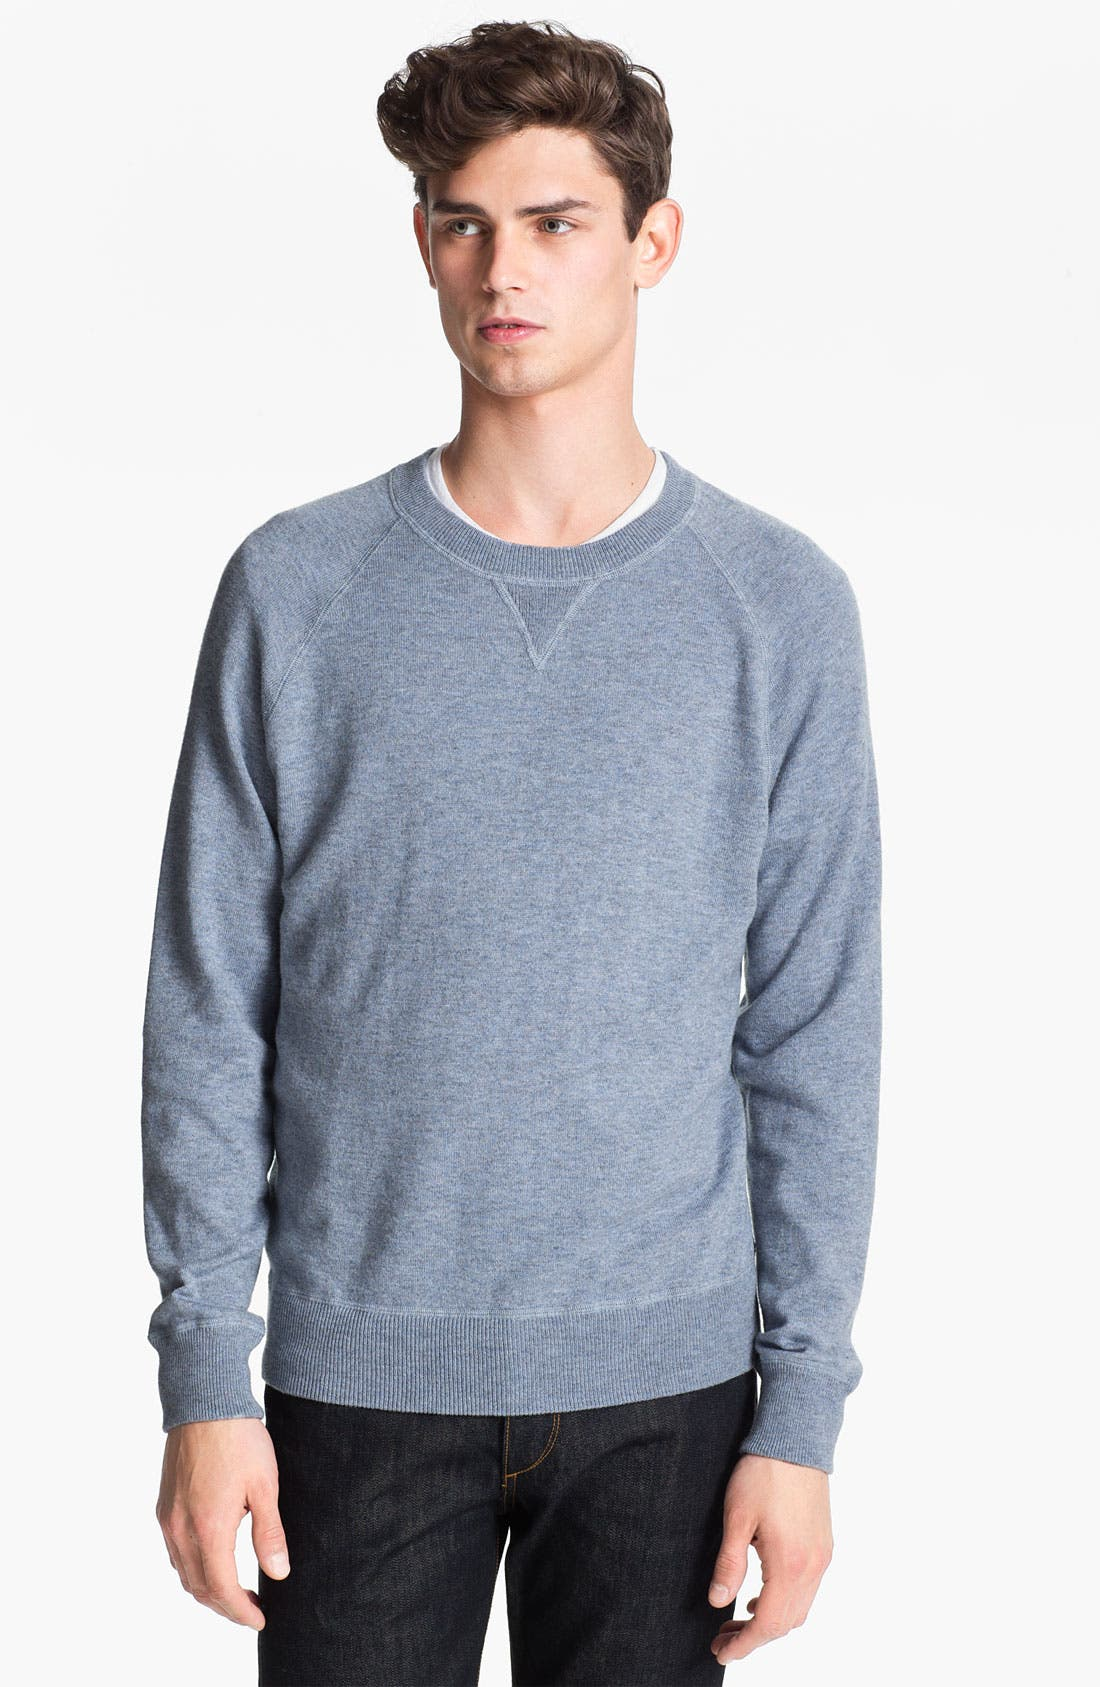 Main Image - Cardigan by Lynne Hiriak 'Dean' French Terry Crewneck Sweatshirt